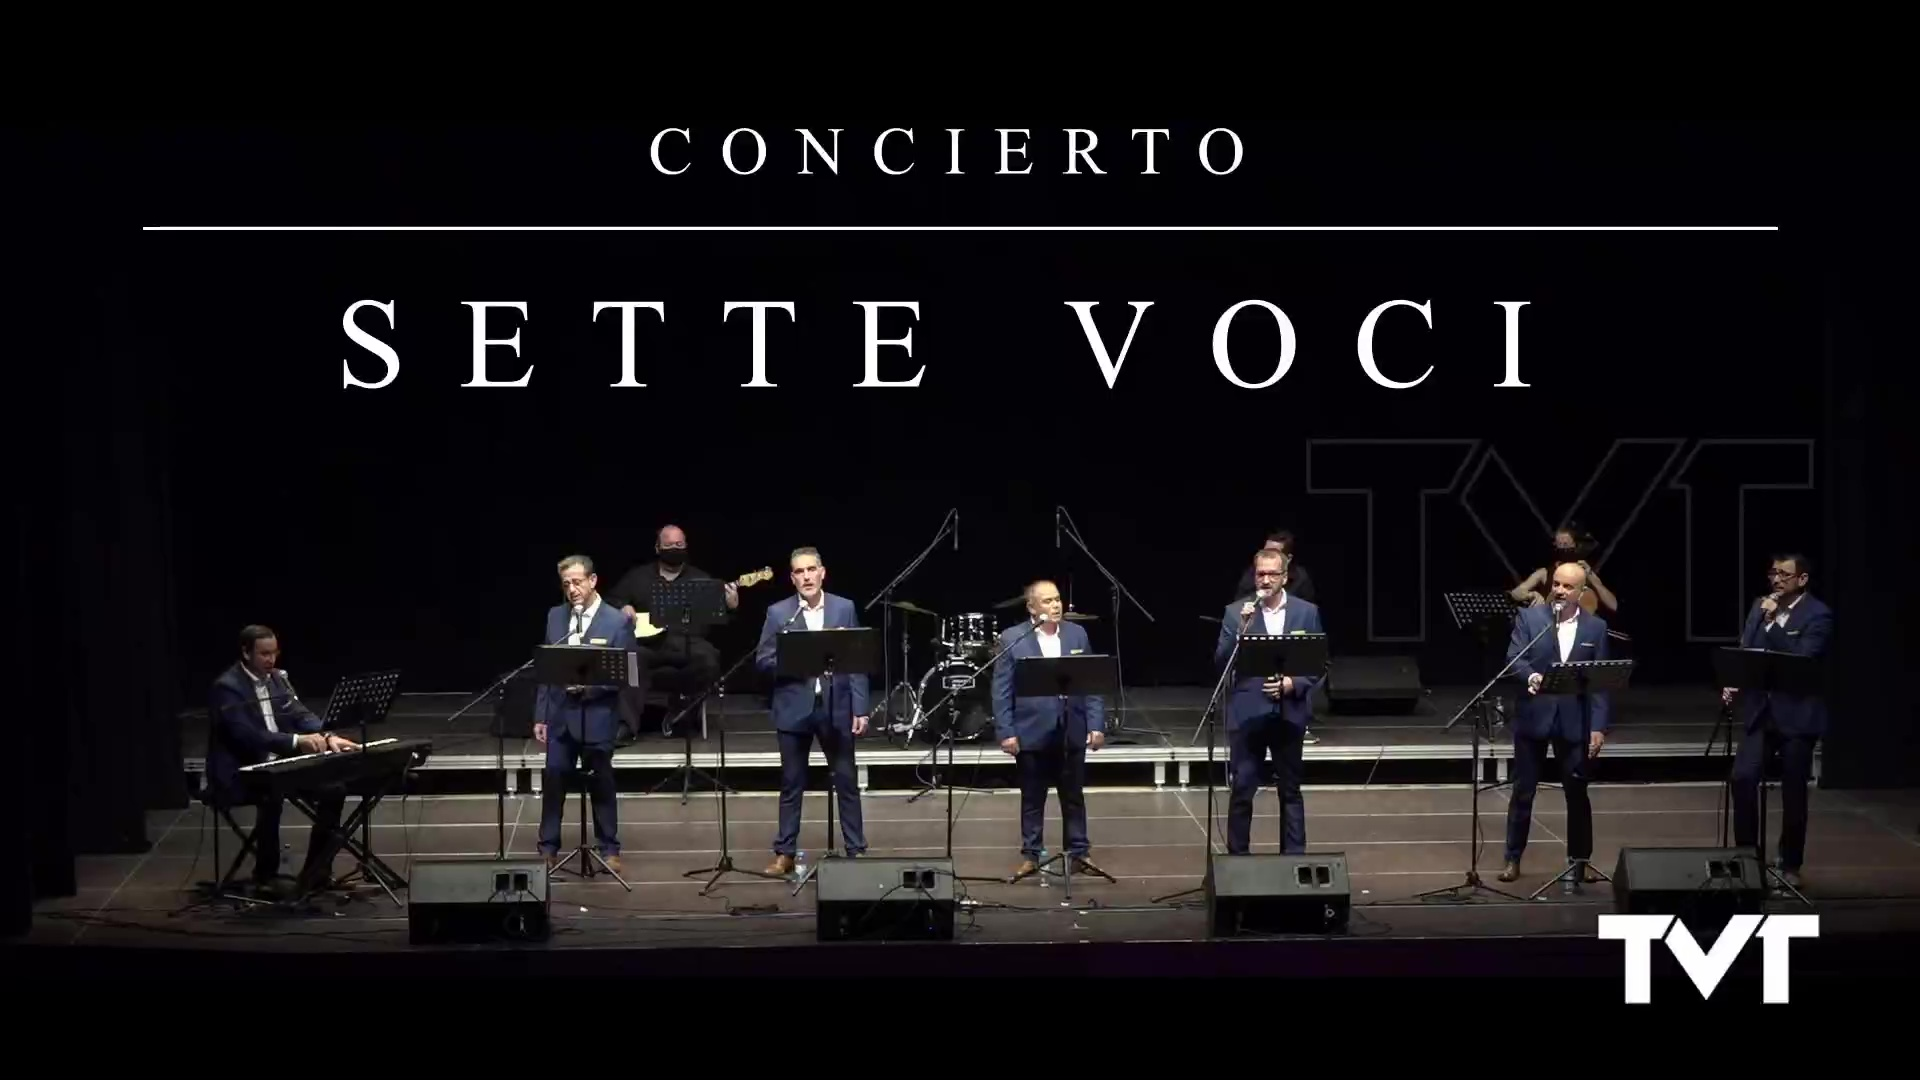 Concierto Sette Voci